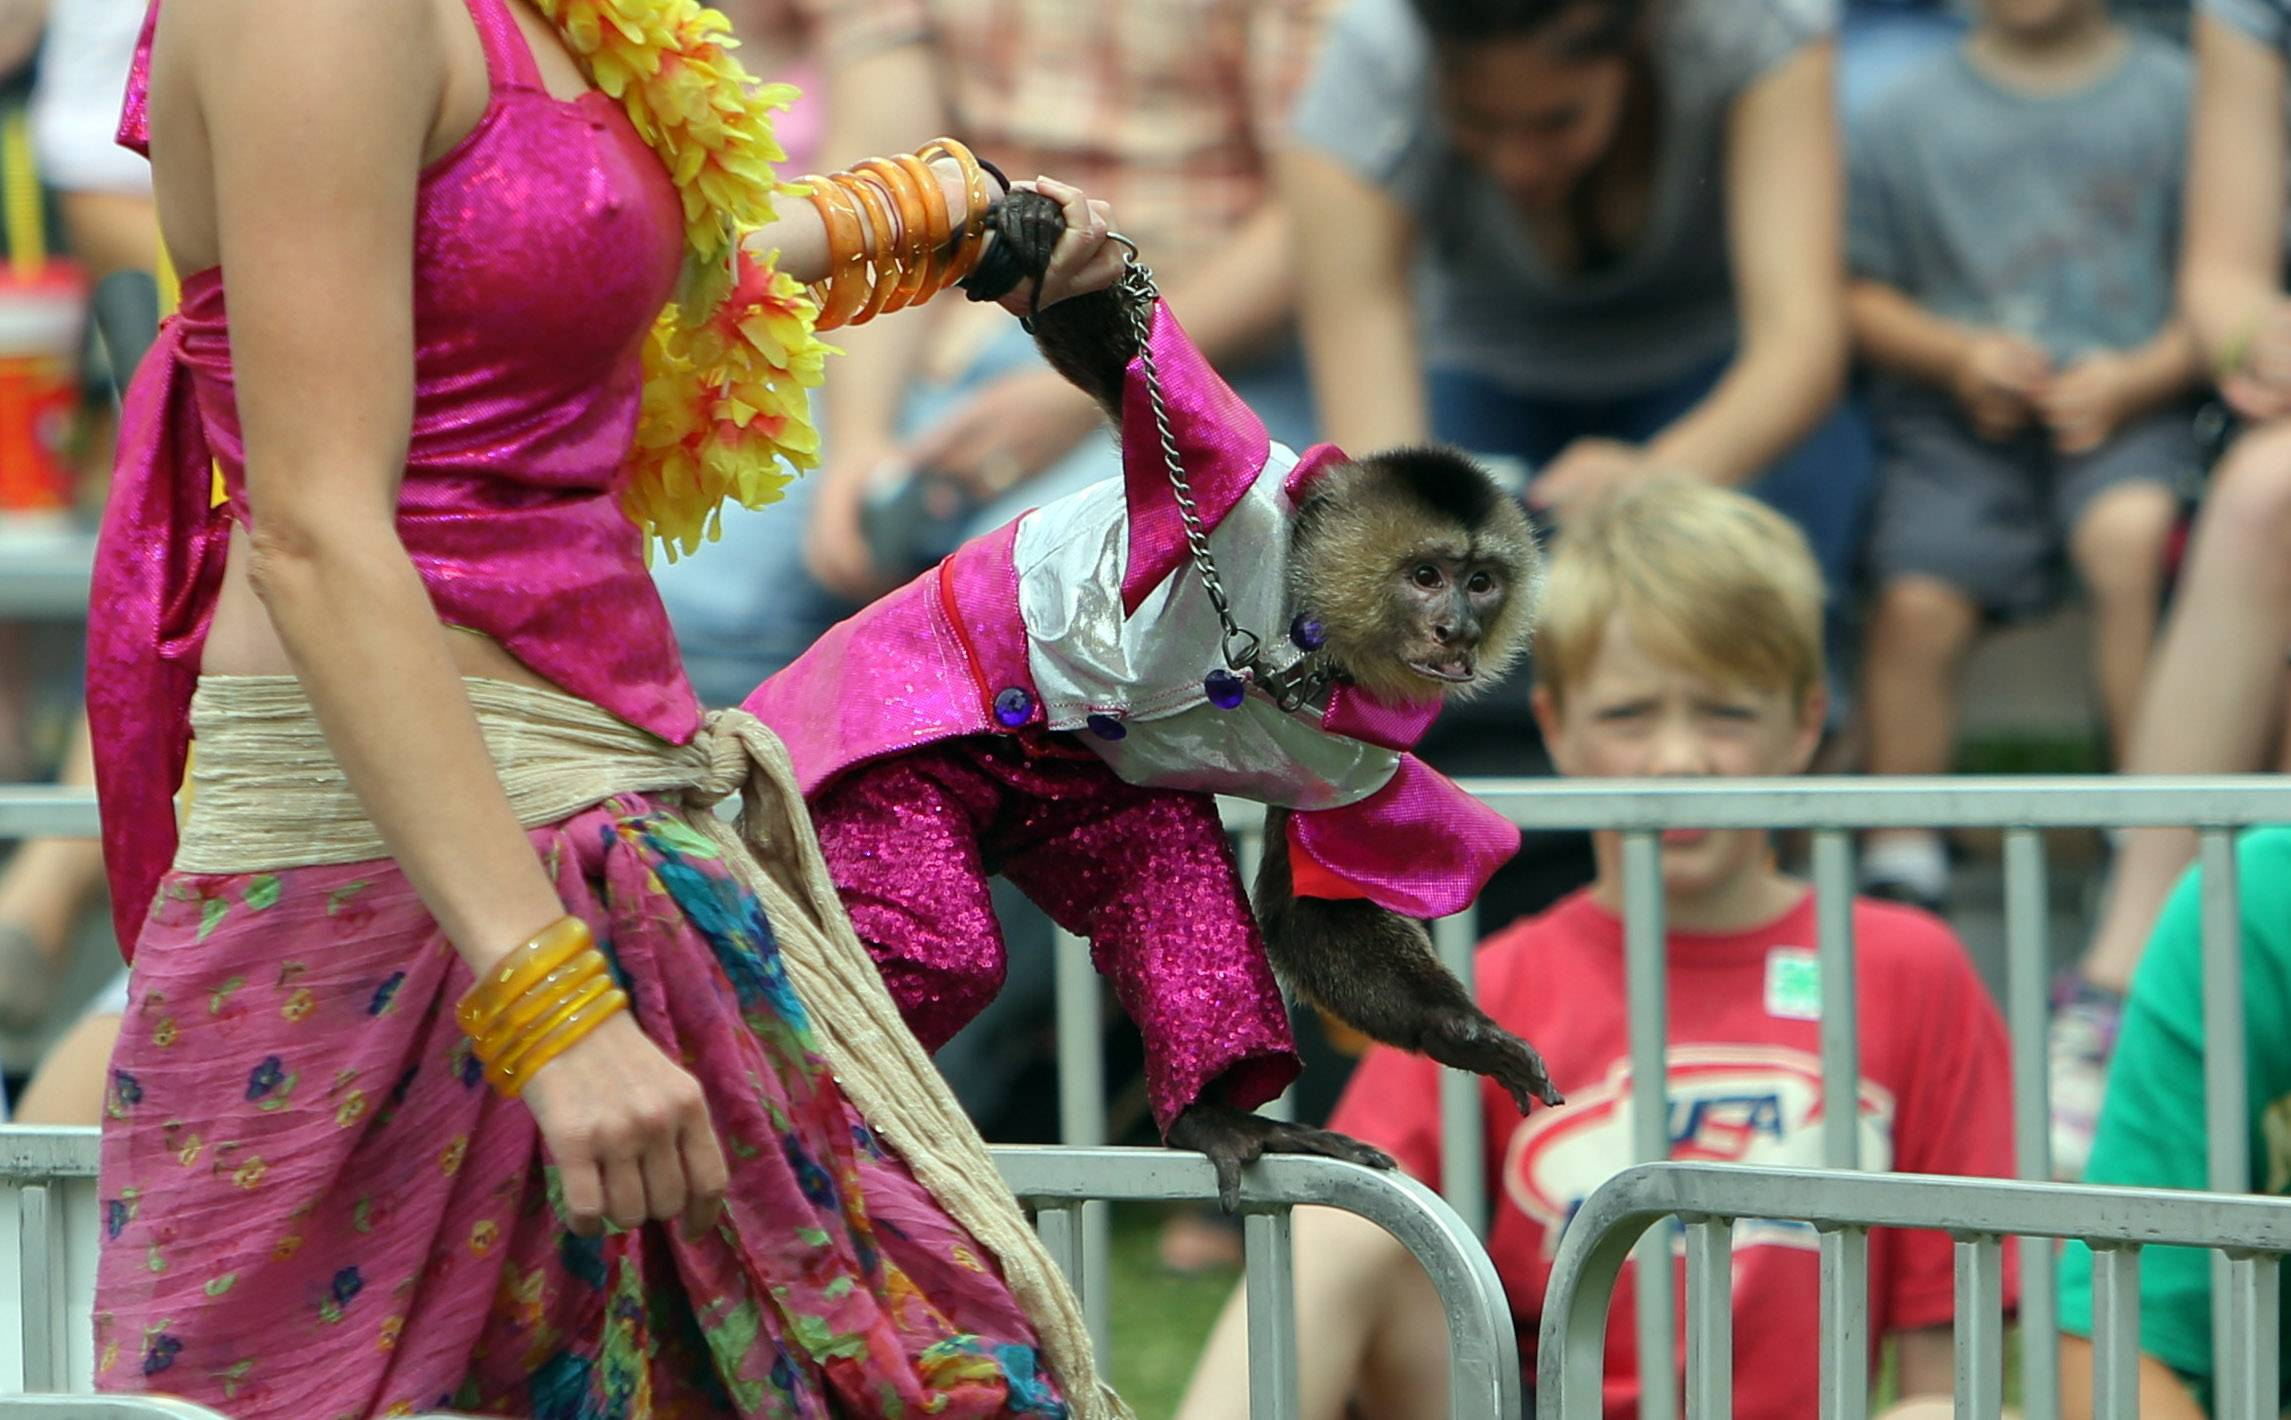 Gilligan, a capuchin monkey, is introduced during the Banana Derby.